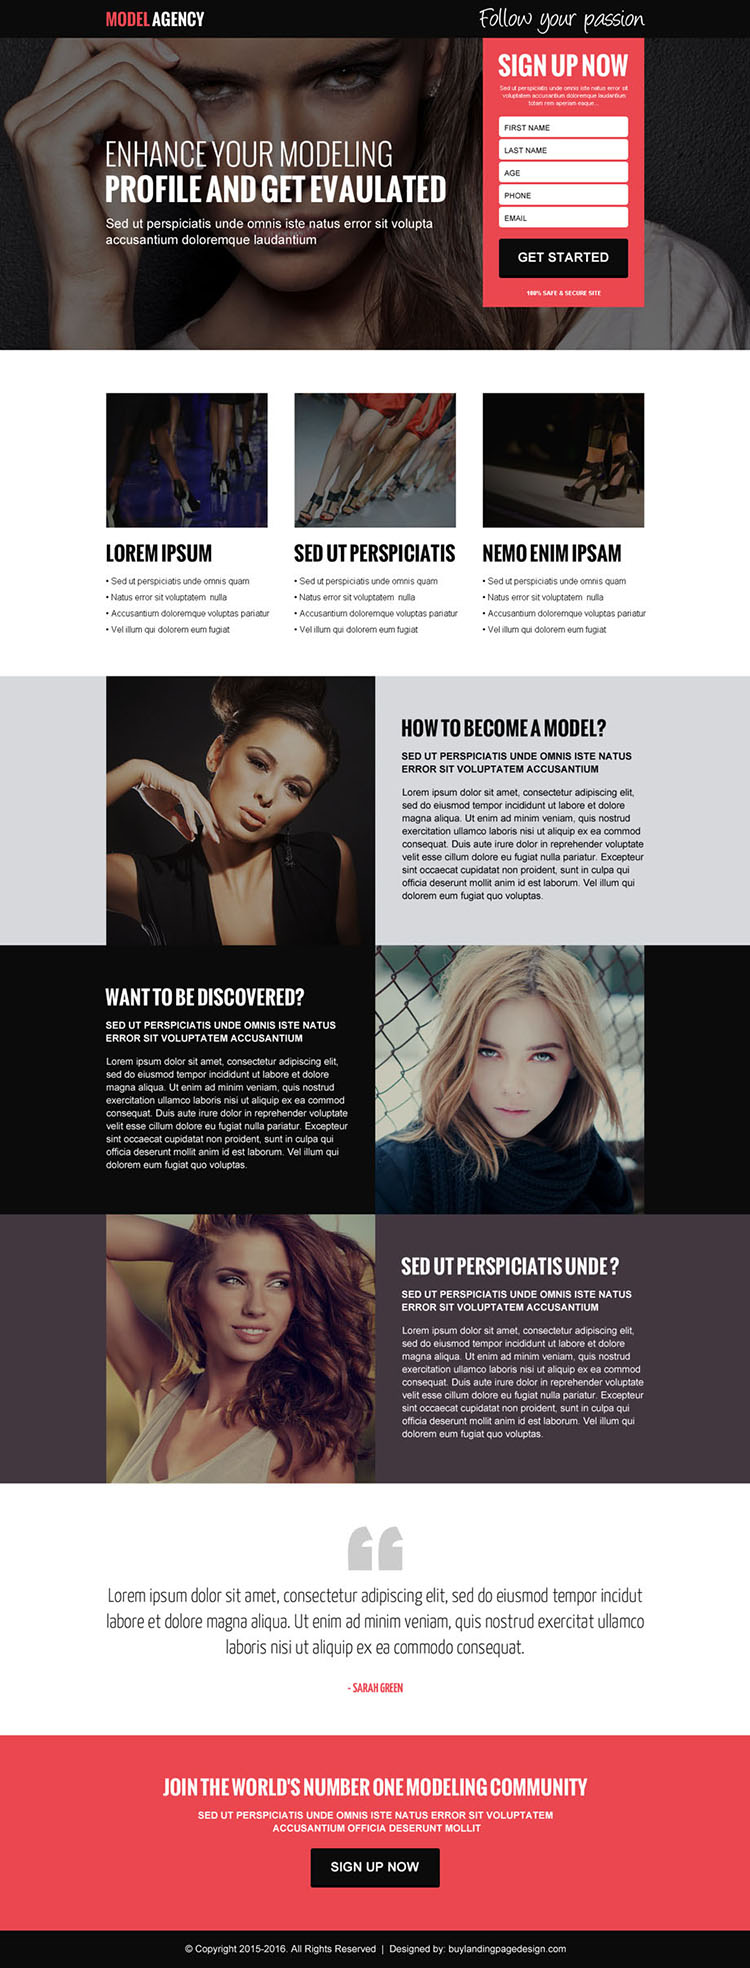 modelling agency sign up lead gen landing page design template